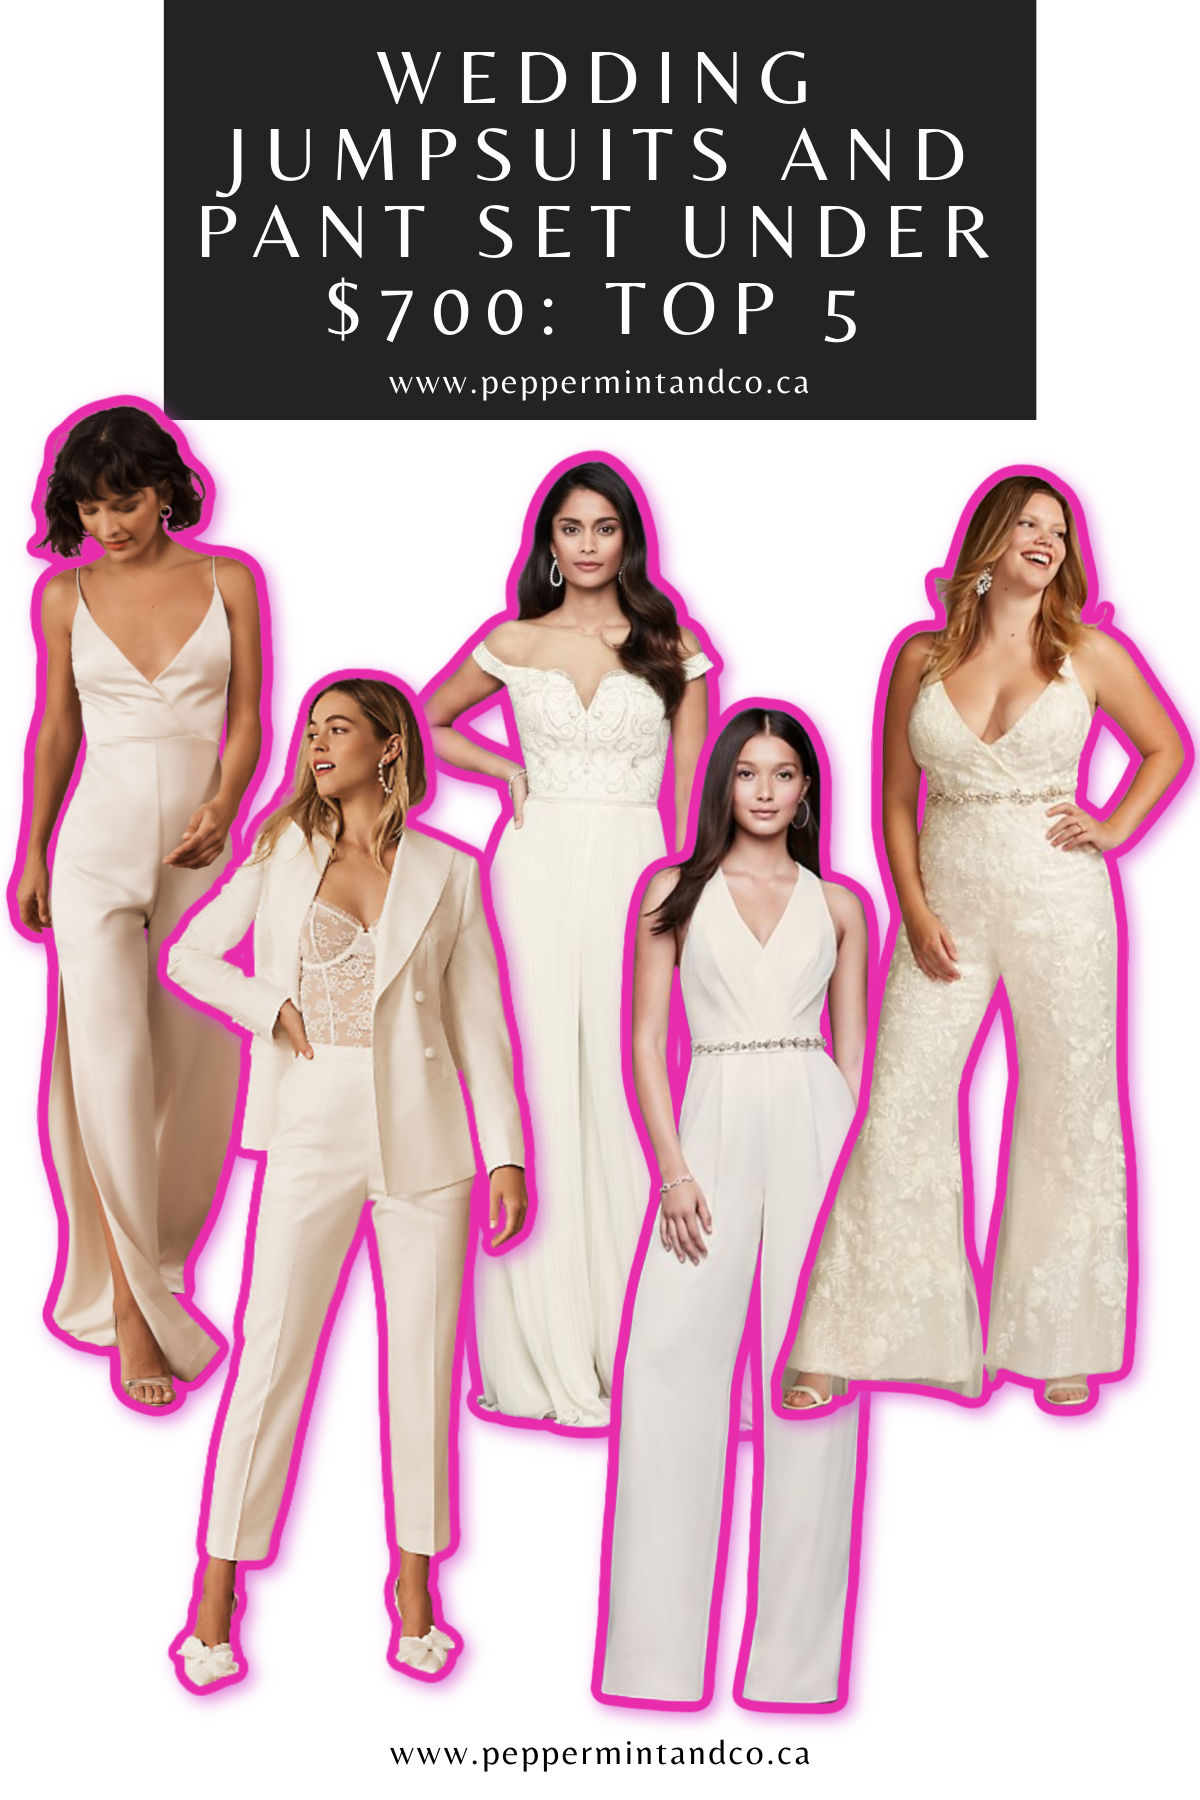 Wedding Jumpsuits and Pant Set under $700: Top 5